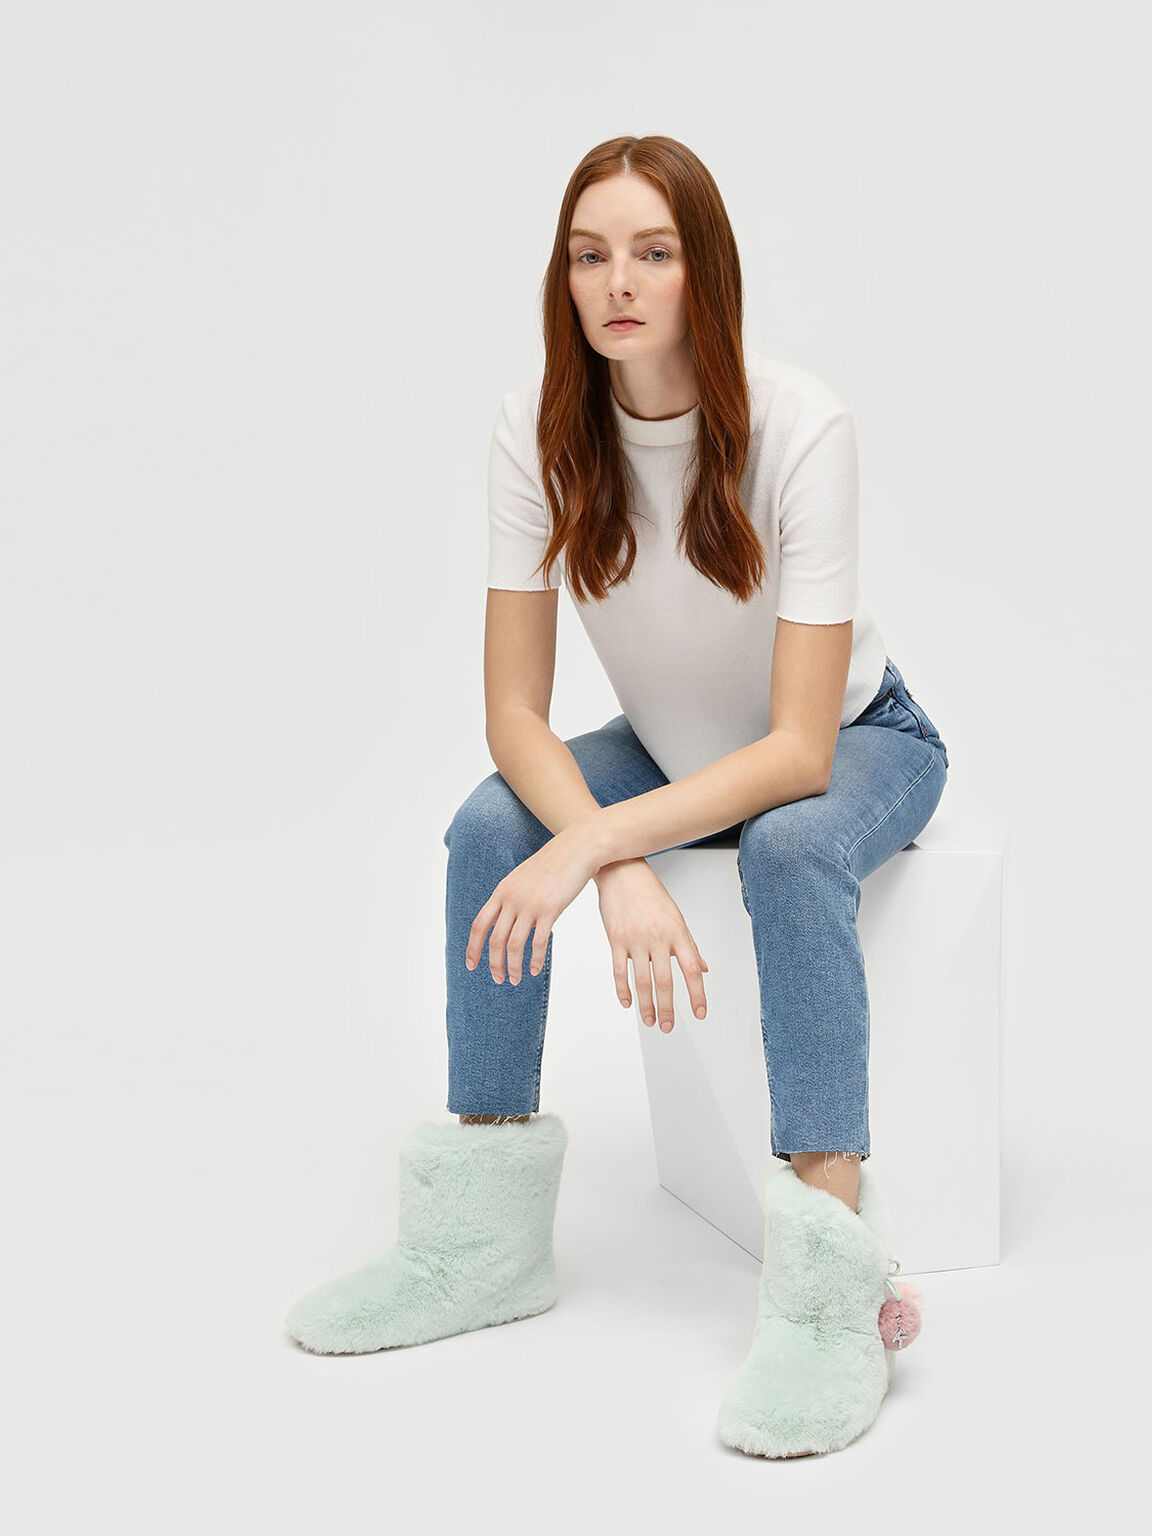 Furry Pom Pom Boots, Mint Green, hi-res